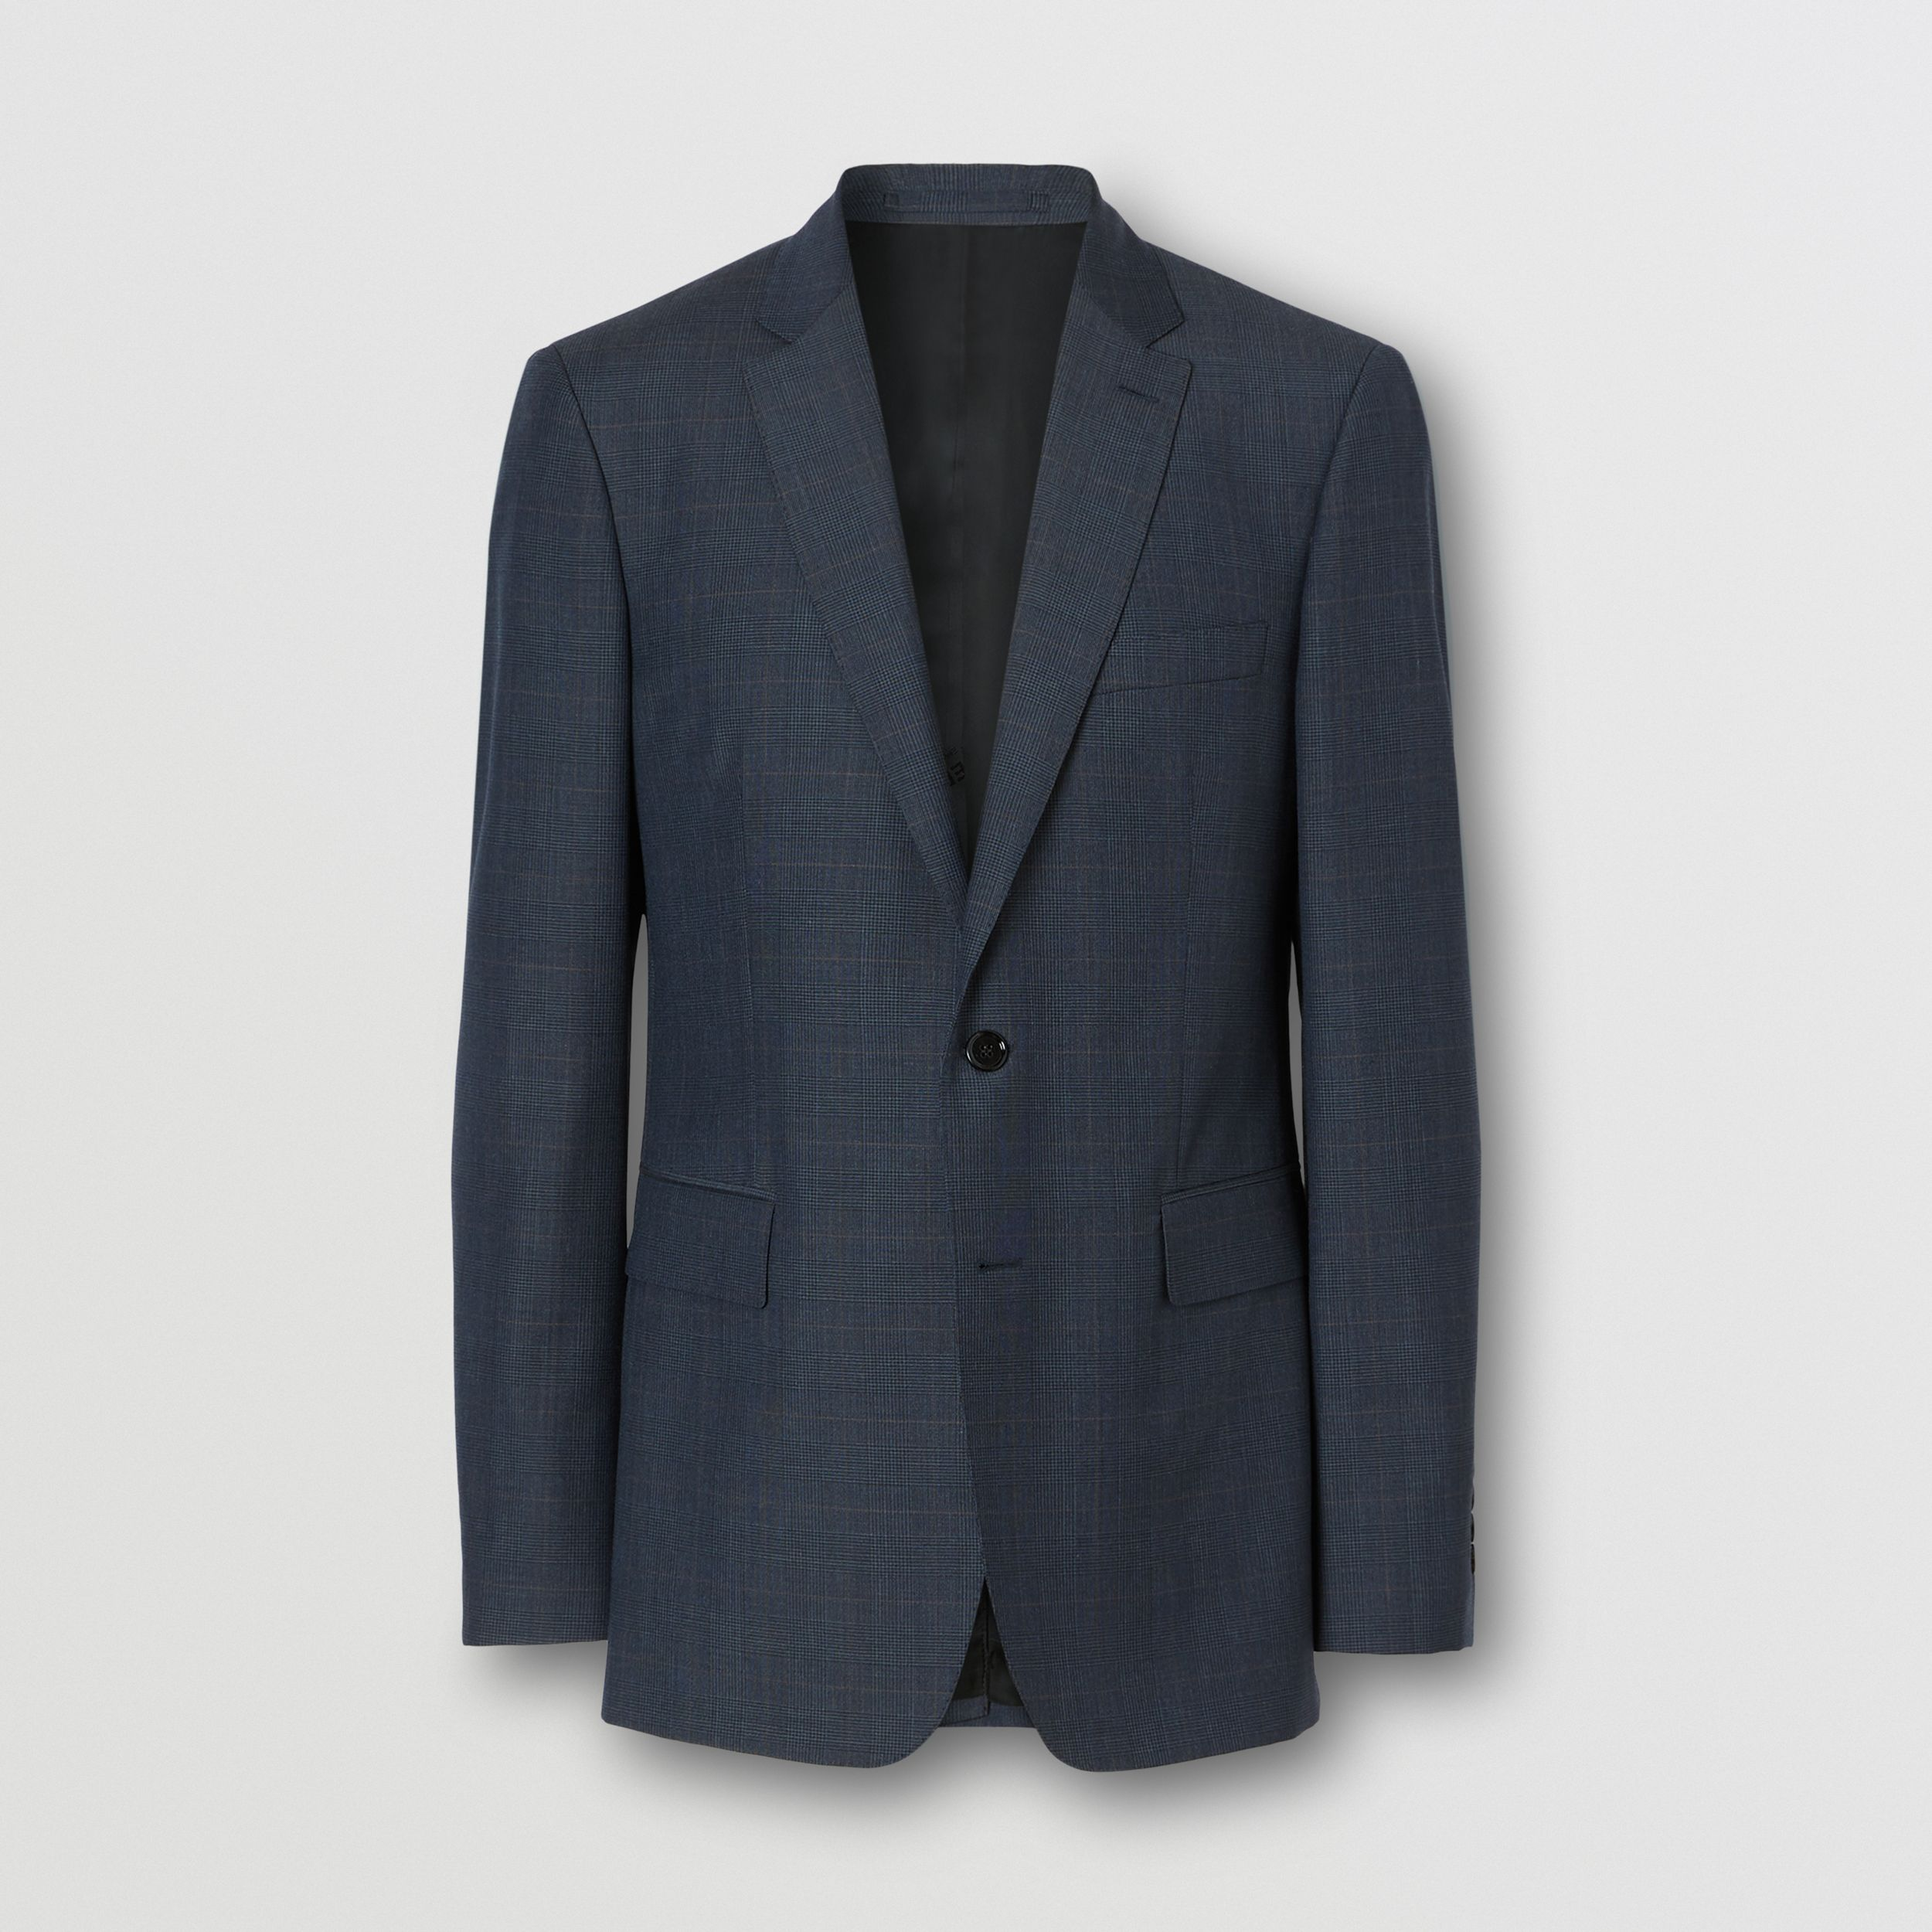 Slim Fit Prince of Wales Check Wool Suit in Carbon Blue - Men | Burberry United States - 4